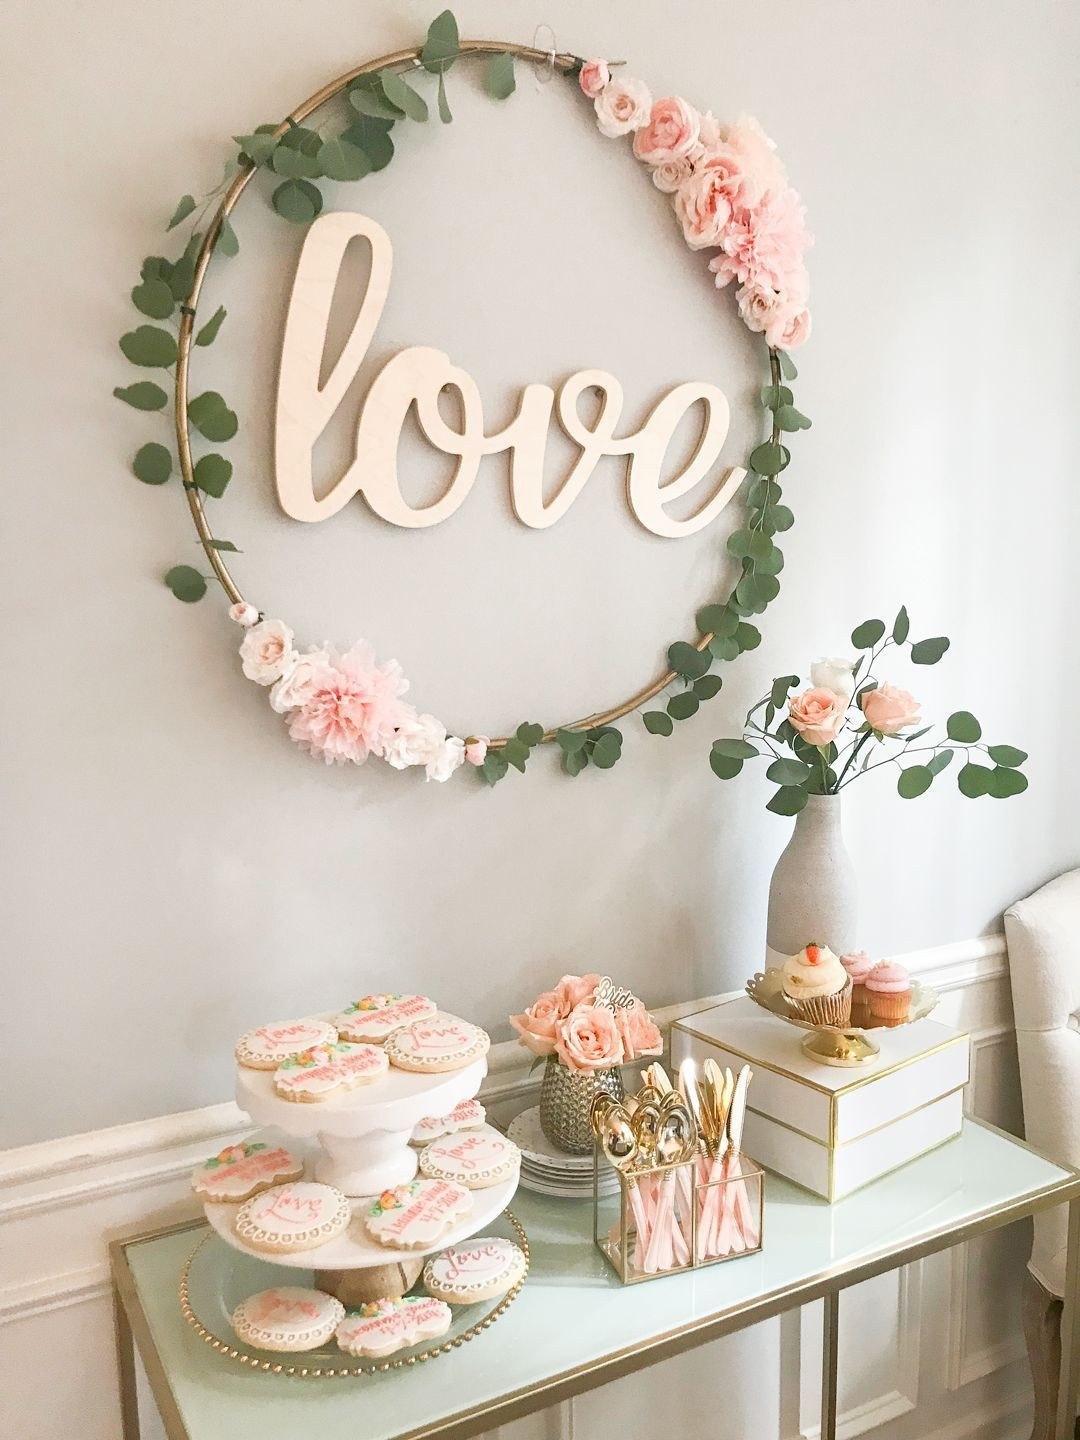 Diy Hula Hoop Love Sign Diy Bridal Shower Decor Bridal Shower